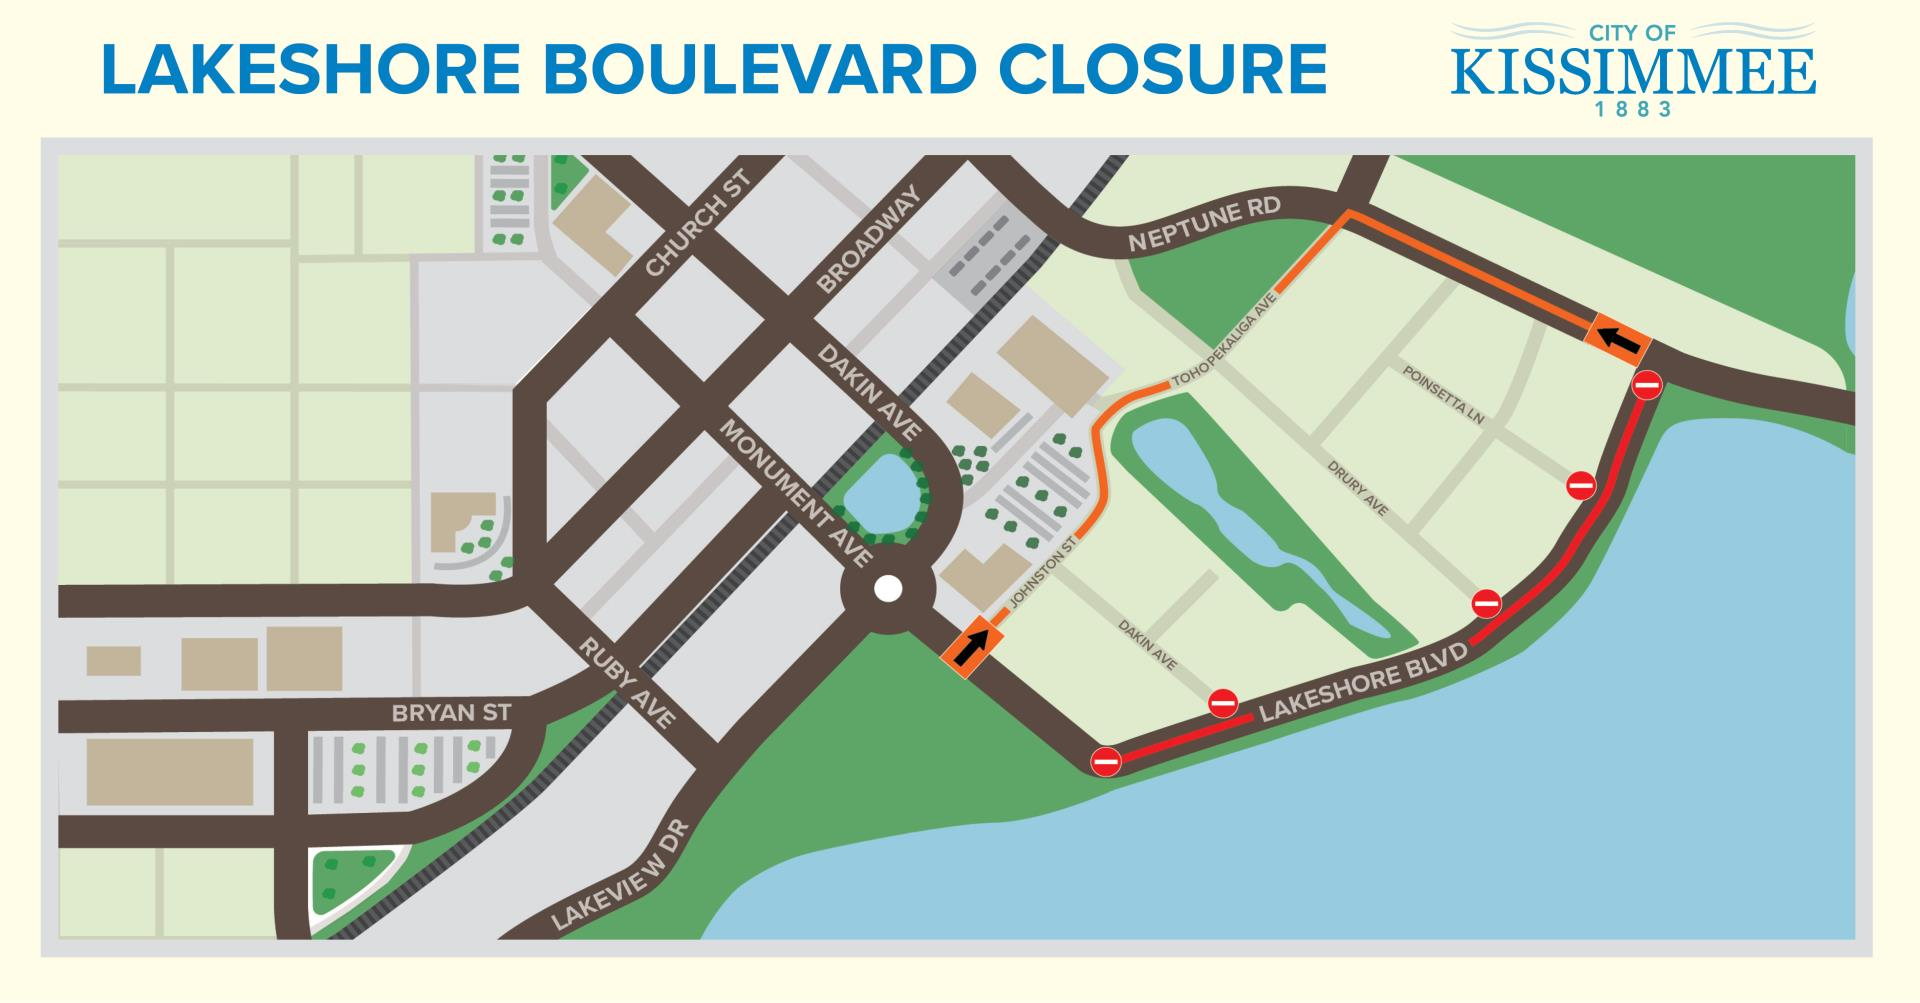 NR 18-003 MAP Construction on Lakeshore Boulevard Brings Road Closures.docx